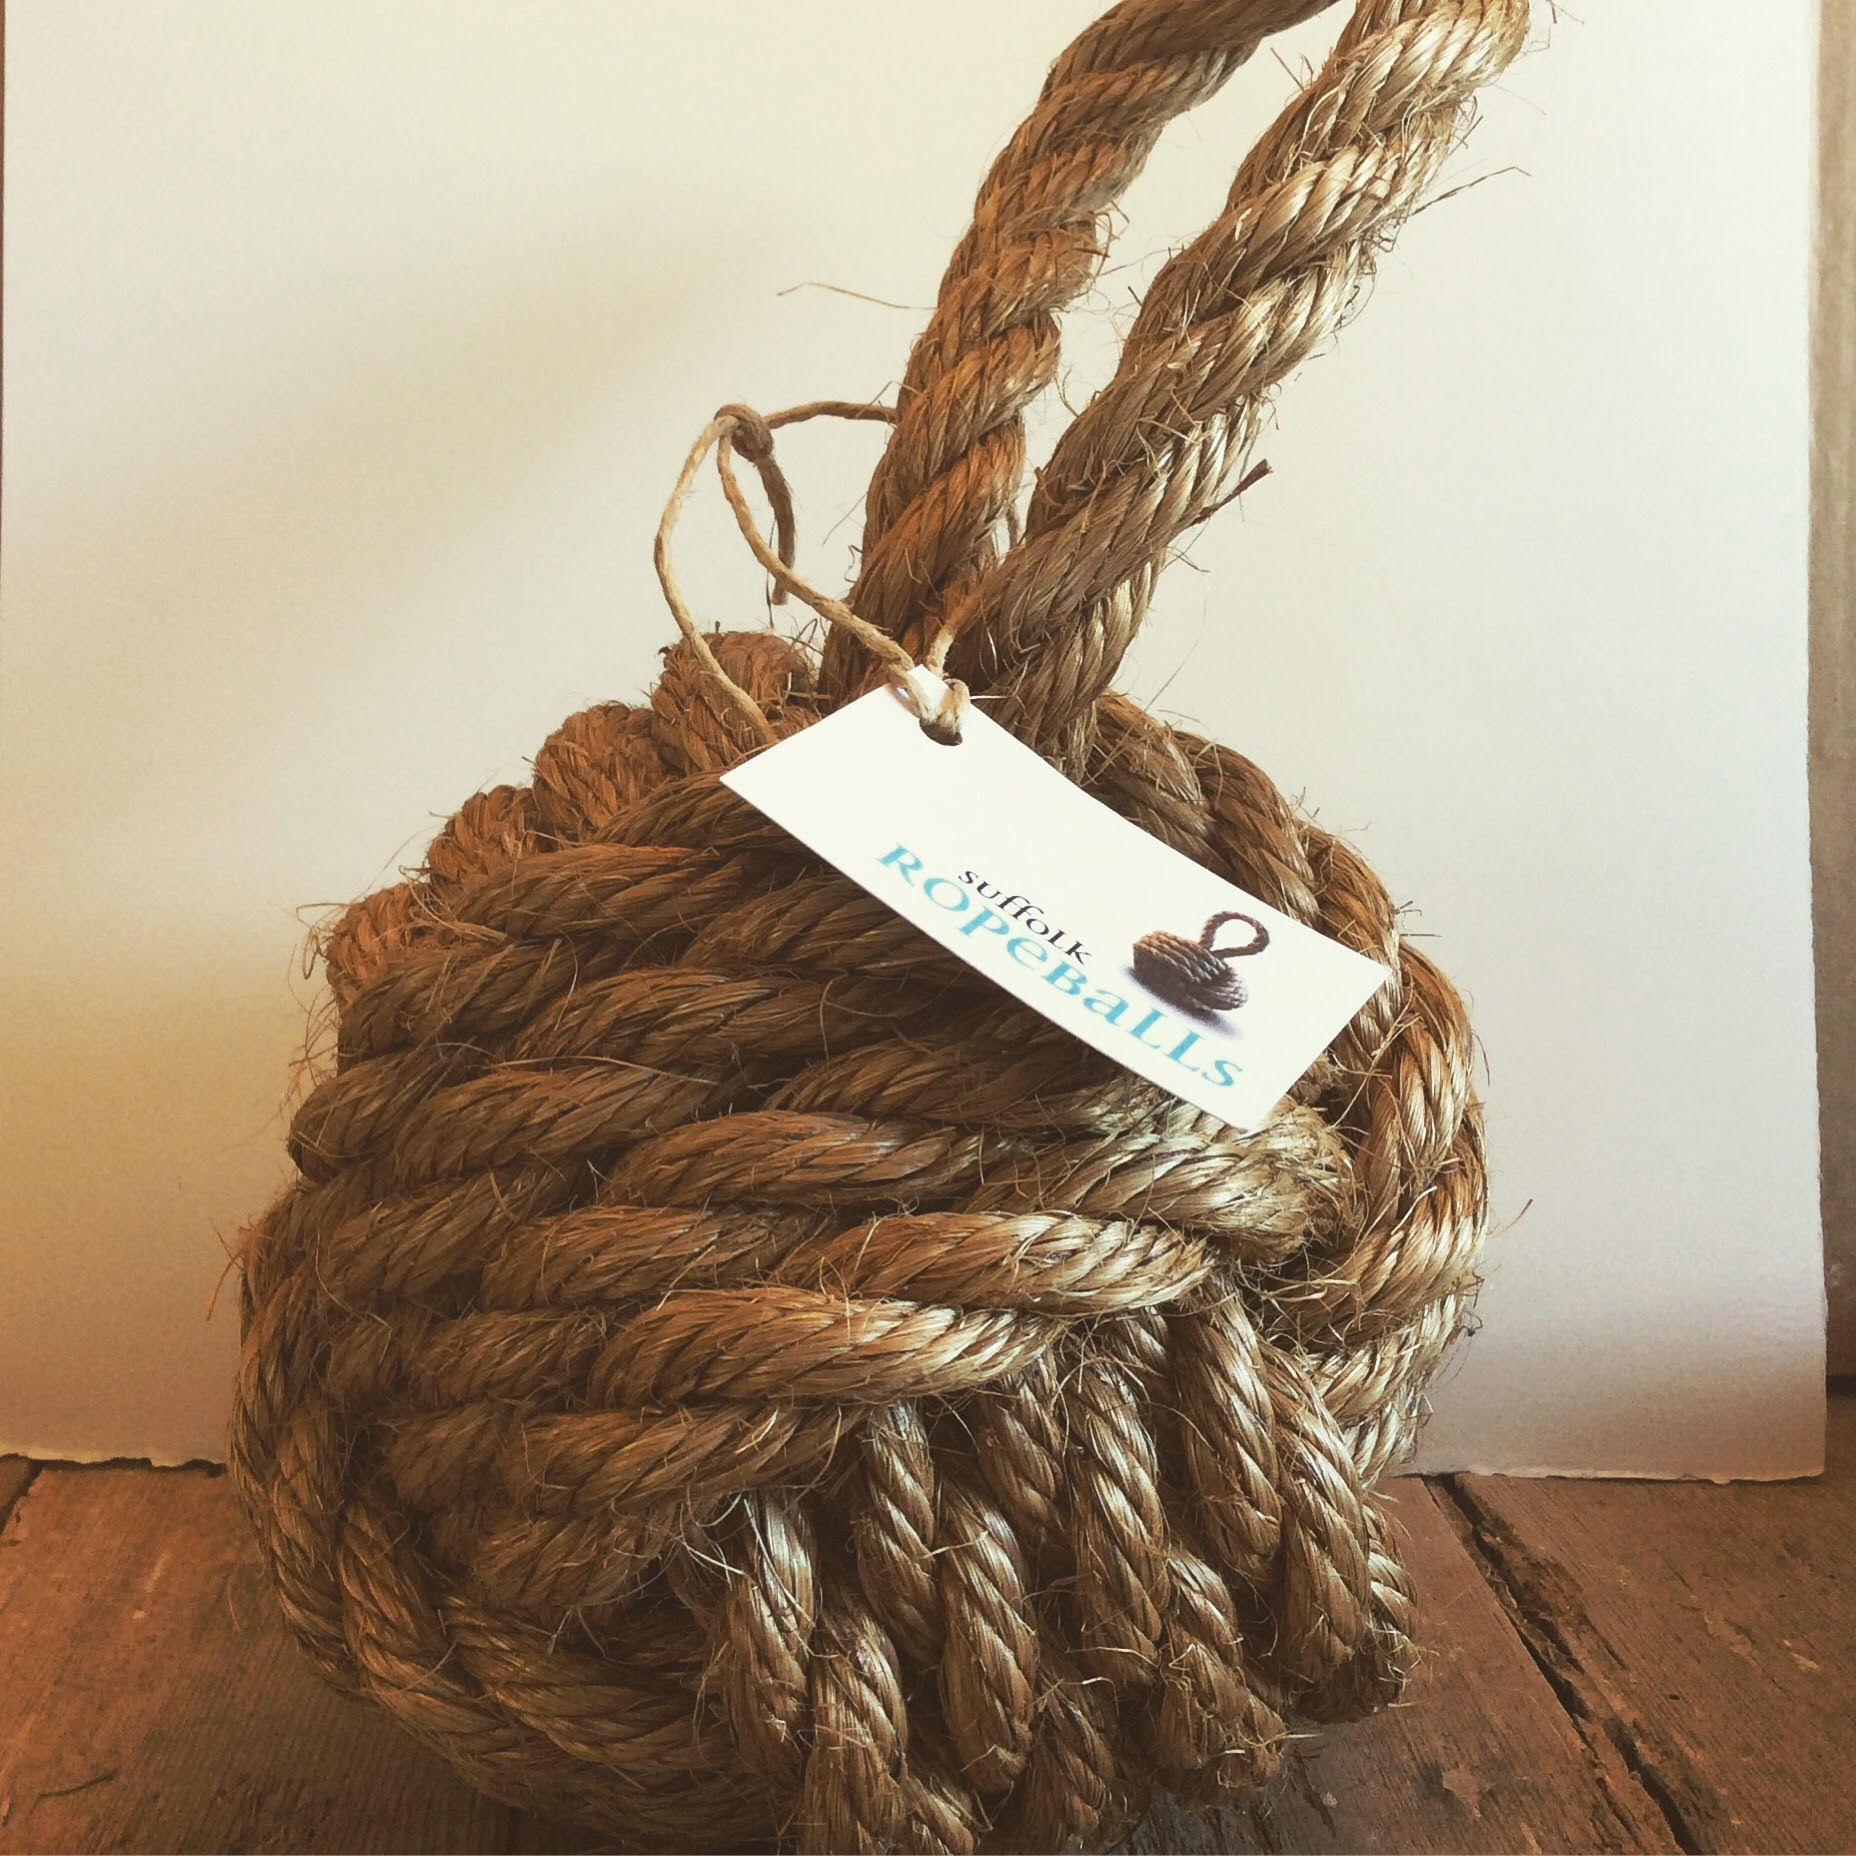 Premium weighted rope ball door stop. Perfect for home decoration for those seeking a nautical or rustic theme.   Created and manufactured by hand in England using high quality manila rope. Suffolk Rope ball door stops make fantastic additions to any home, particularly those seeking a nautical theme. #HomeDécor	#nauticaldecor #ropedoorstop #nauticaldoorstop #nauticalrope #rope	#beachdecor #nauticaldecoration #interiorinspiration #interiordesign